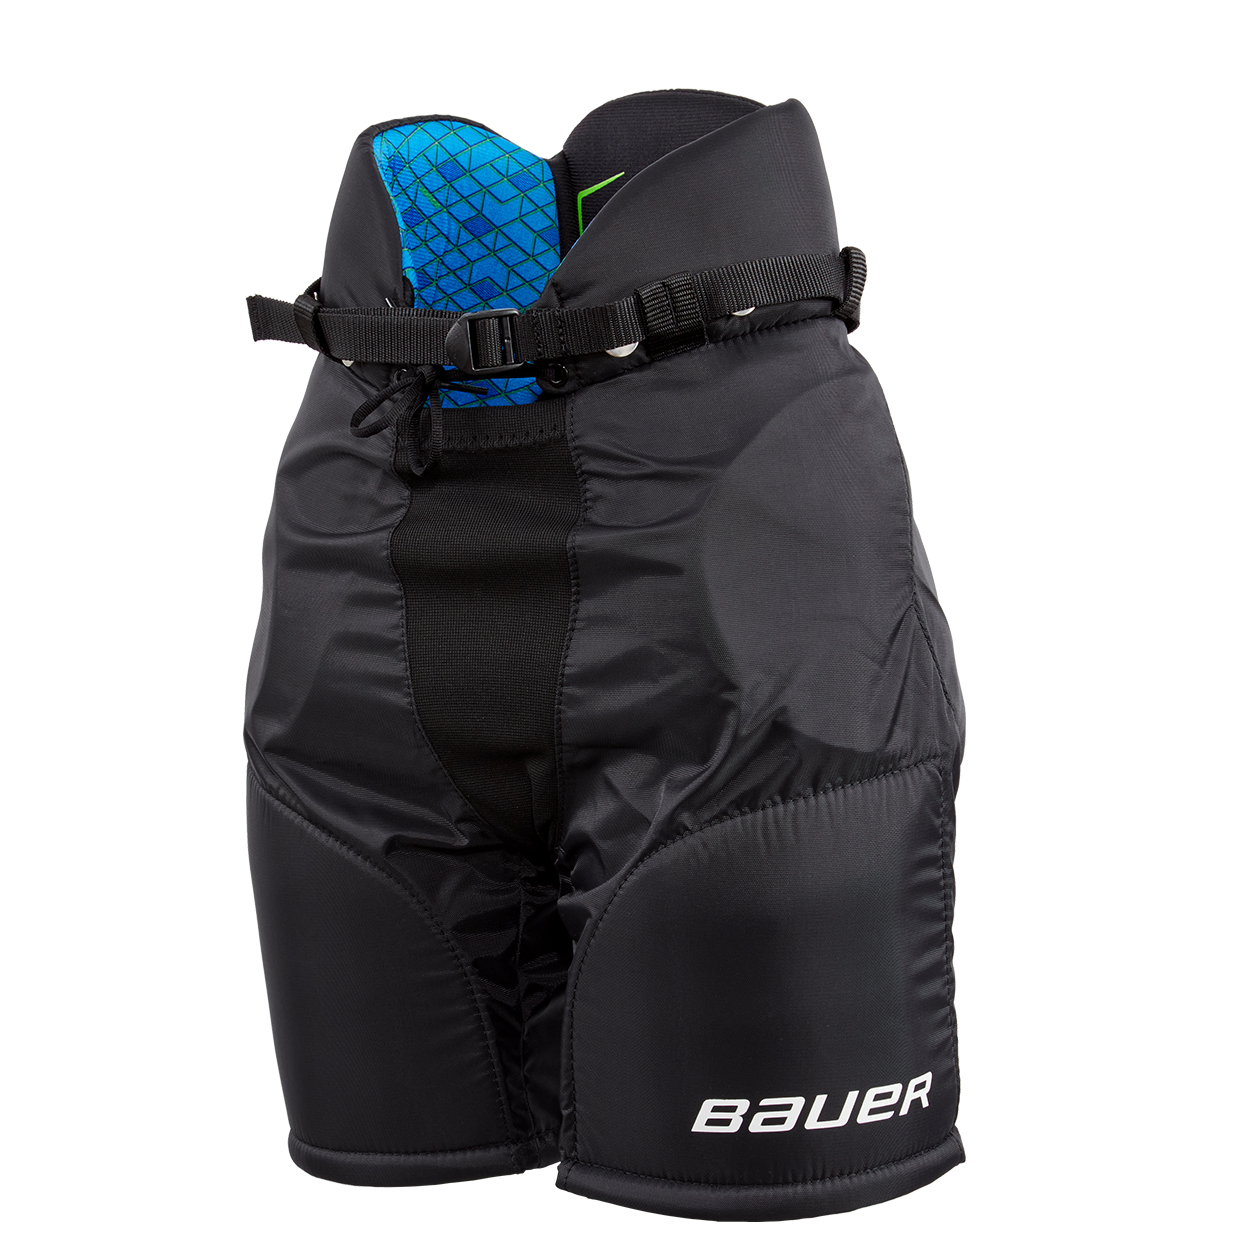 BAUER X Pant Youth